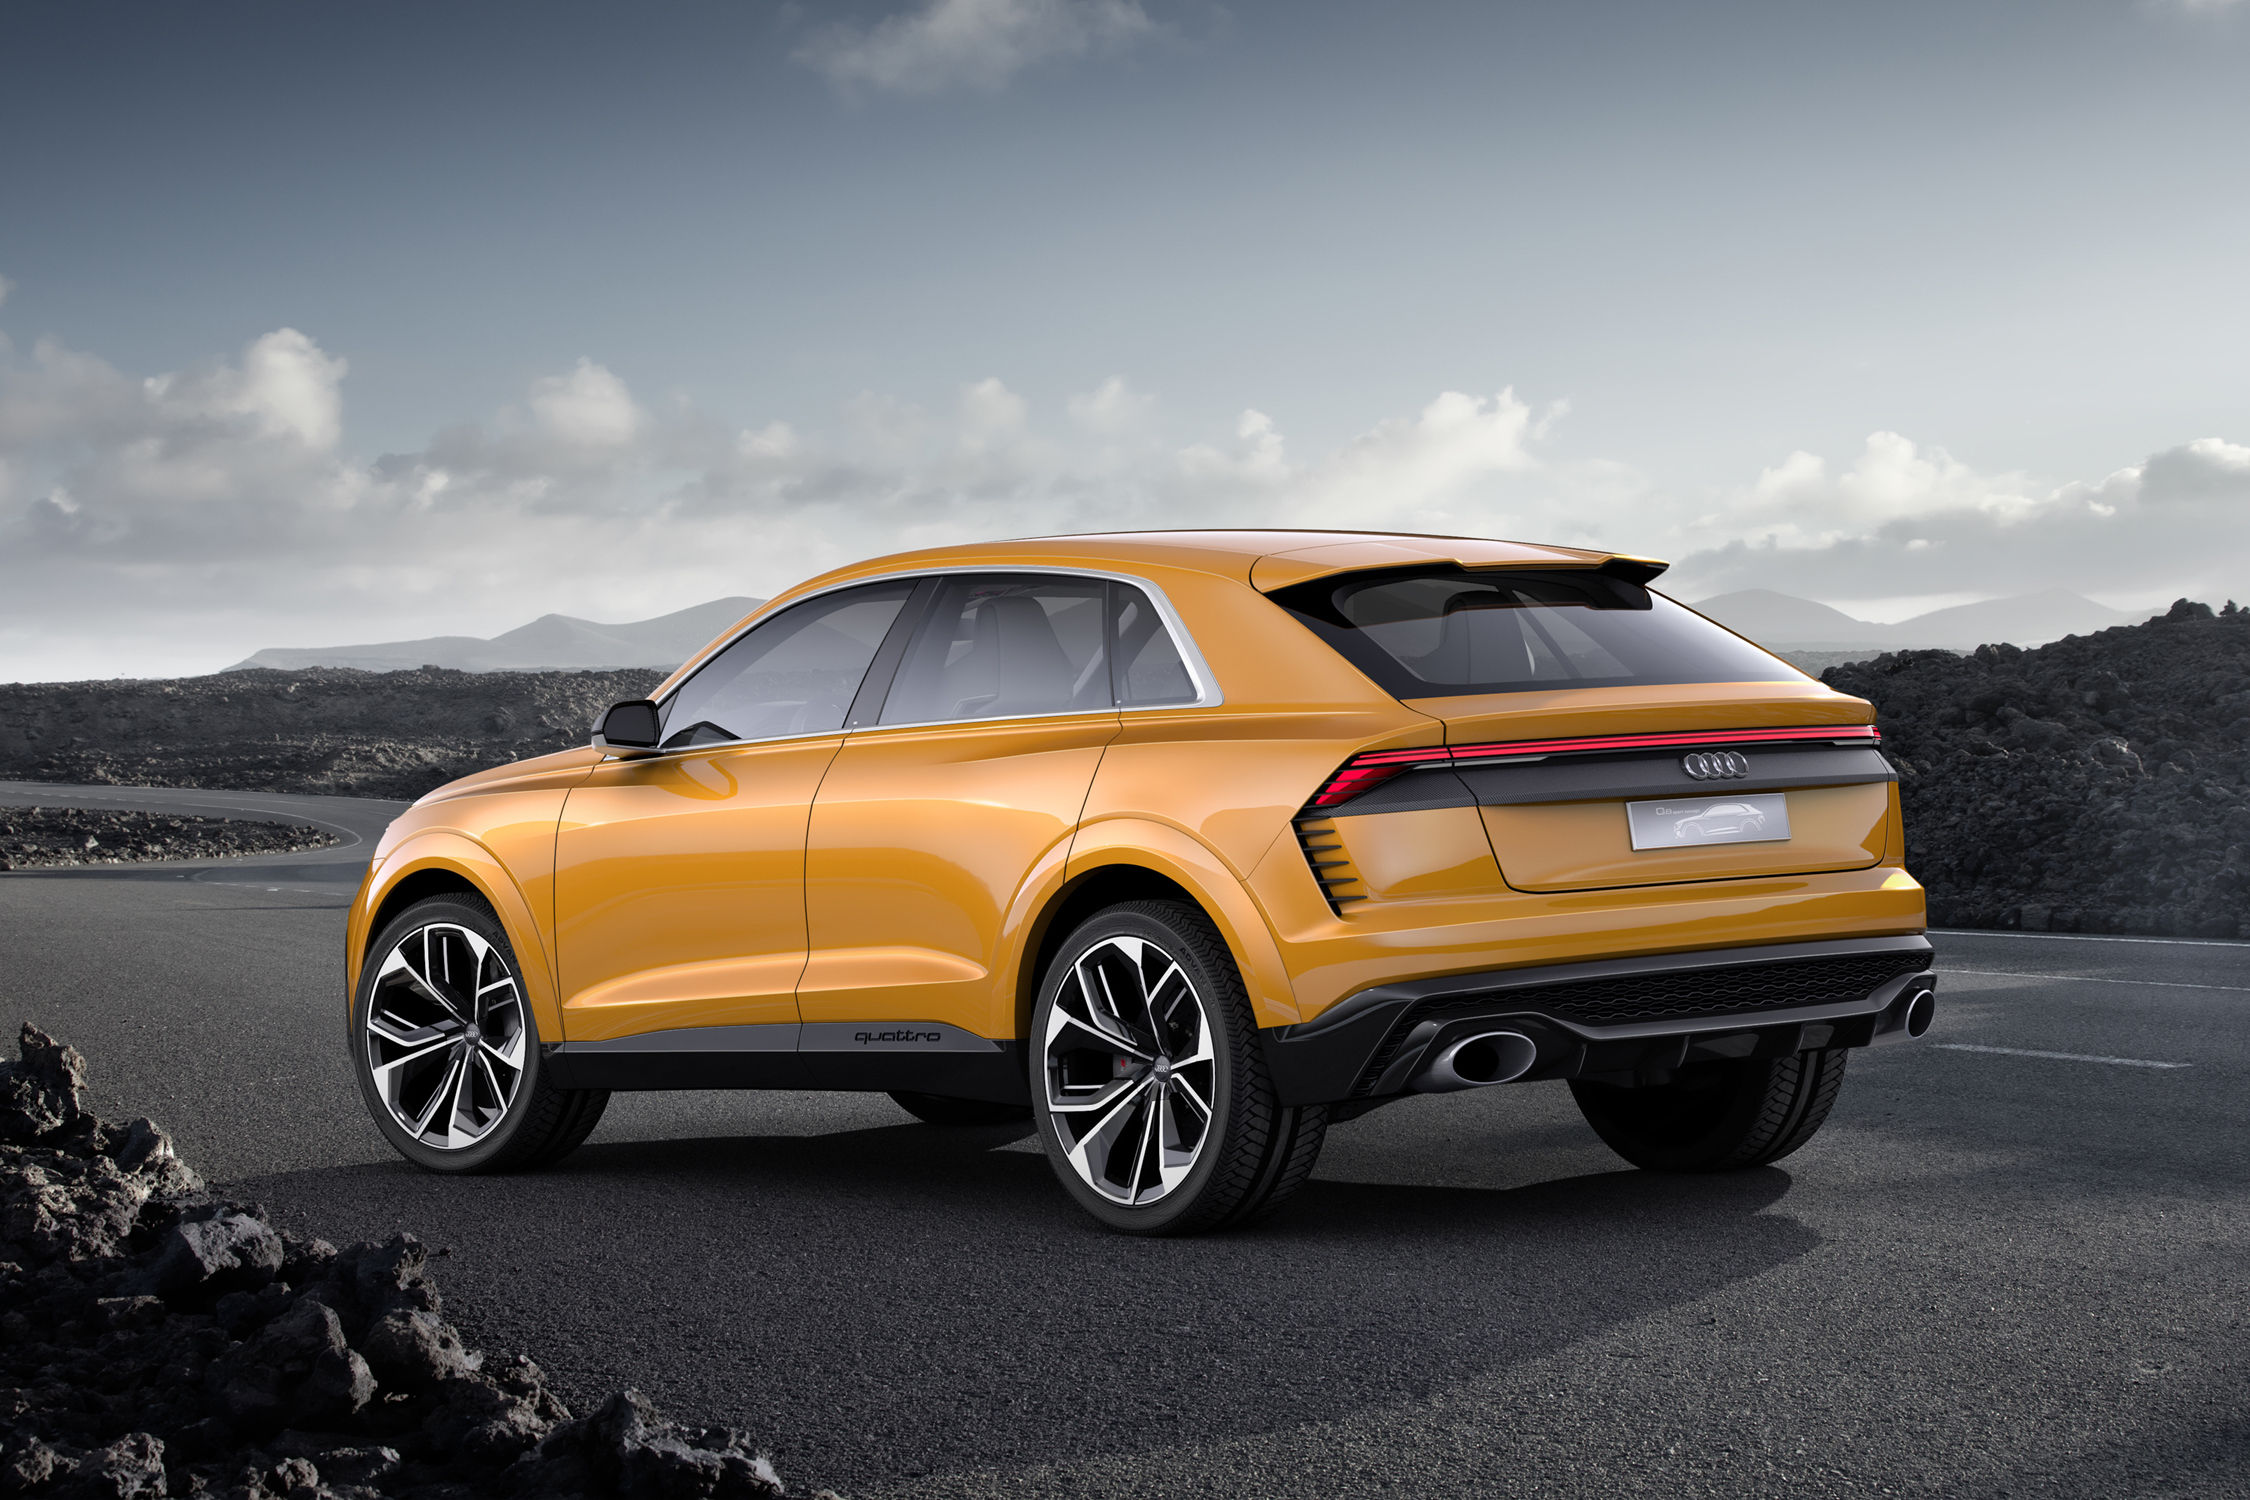 audi deux nouveaux suv bient t en production actualit. Black Bedroom Furniture Sets. Home Design Ideas